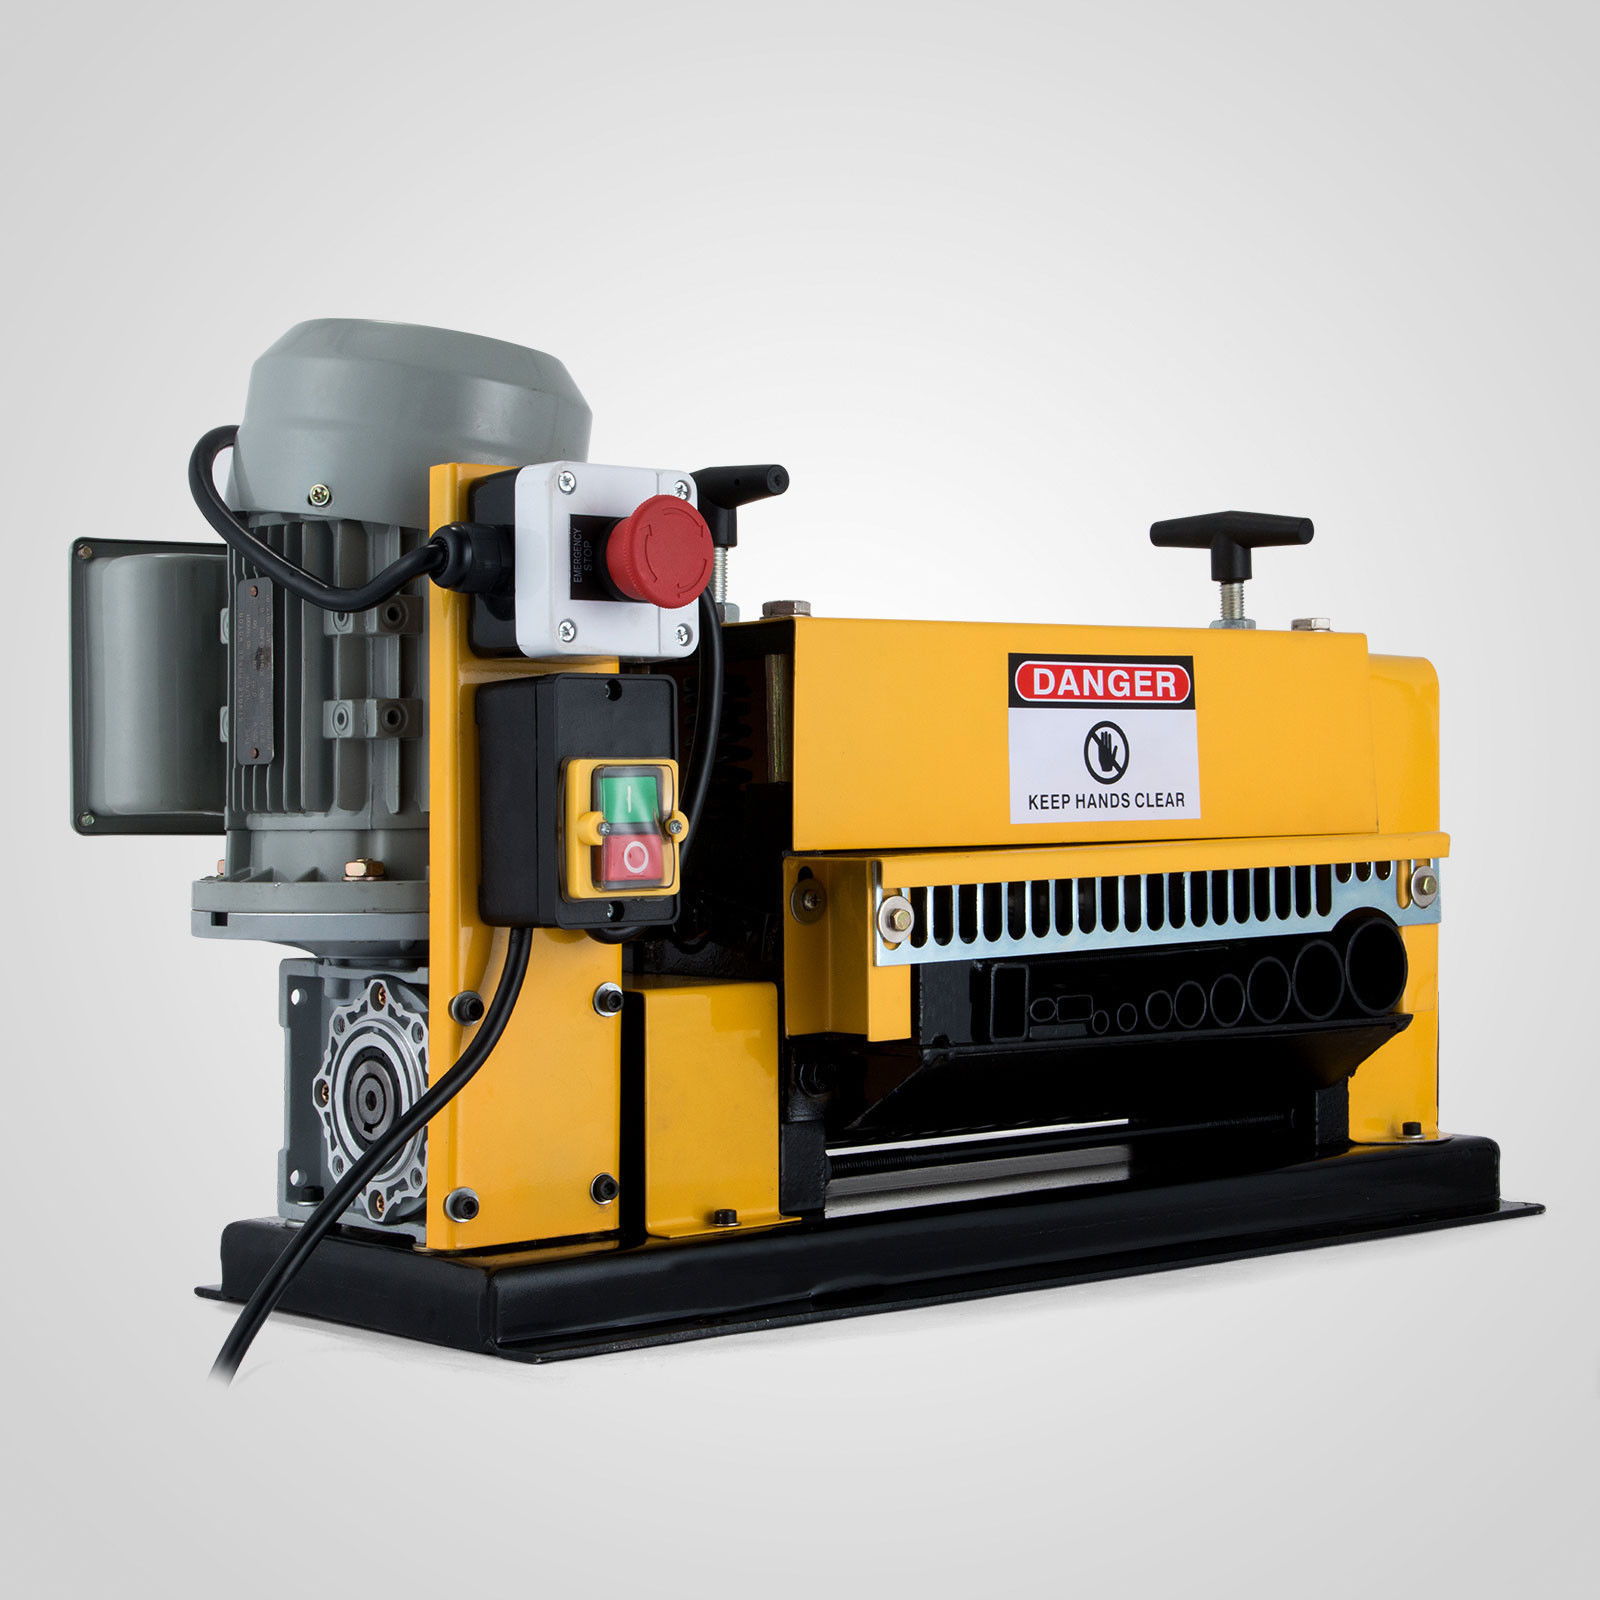 FREE SHIPPING TO EU Wire Stripper Cable Stripping Machine Recycling Copper Cable Stripper 220V